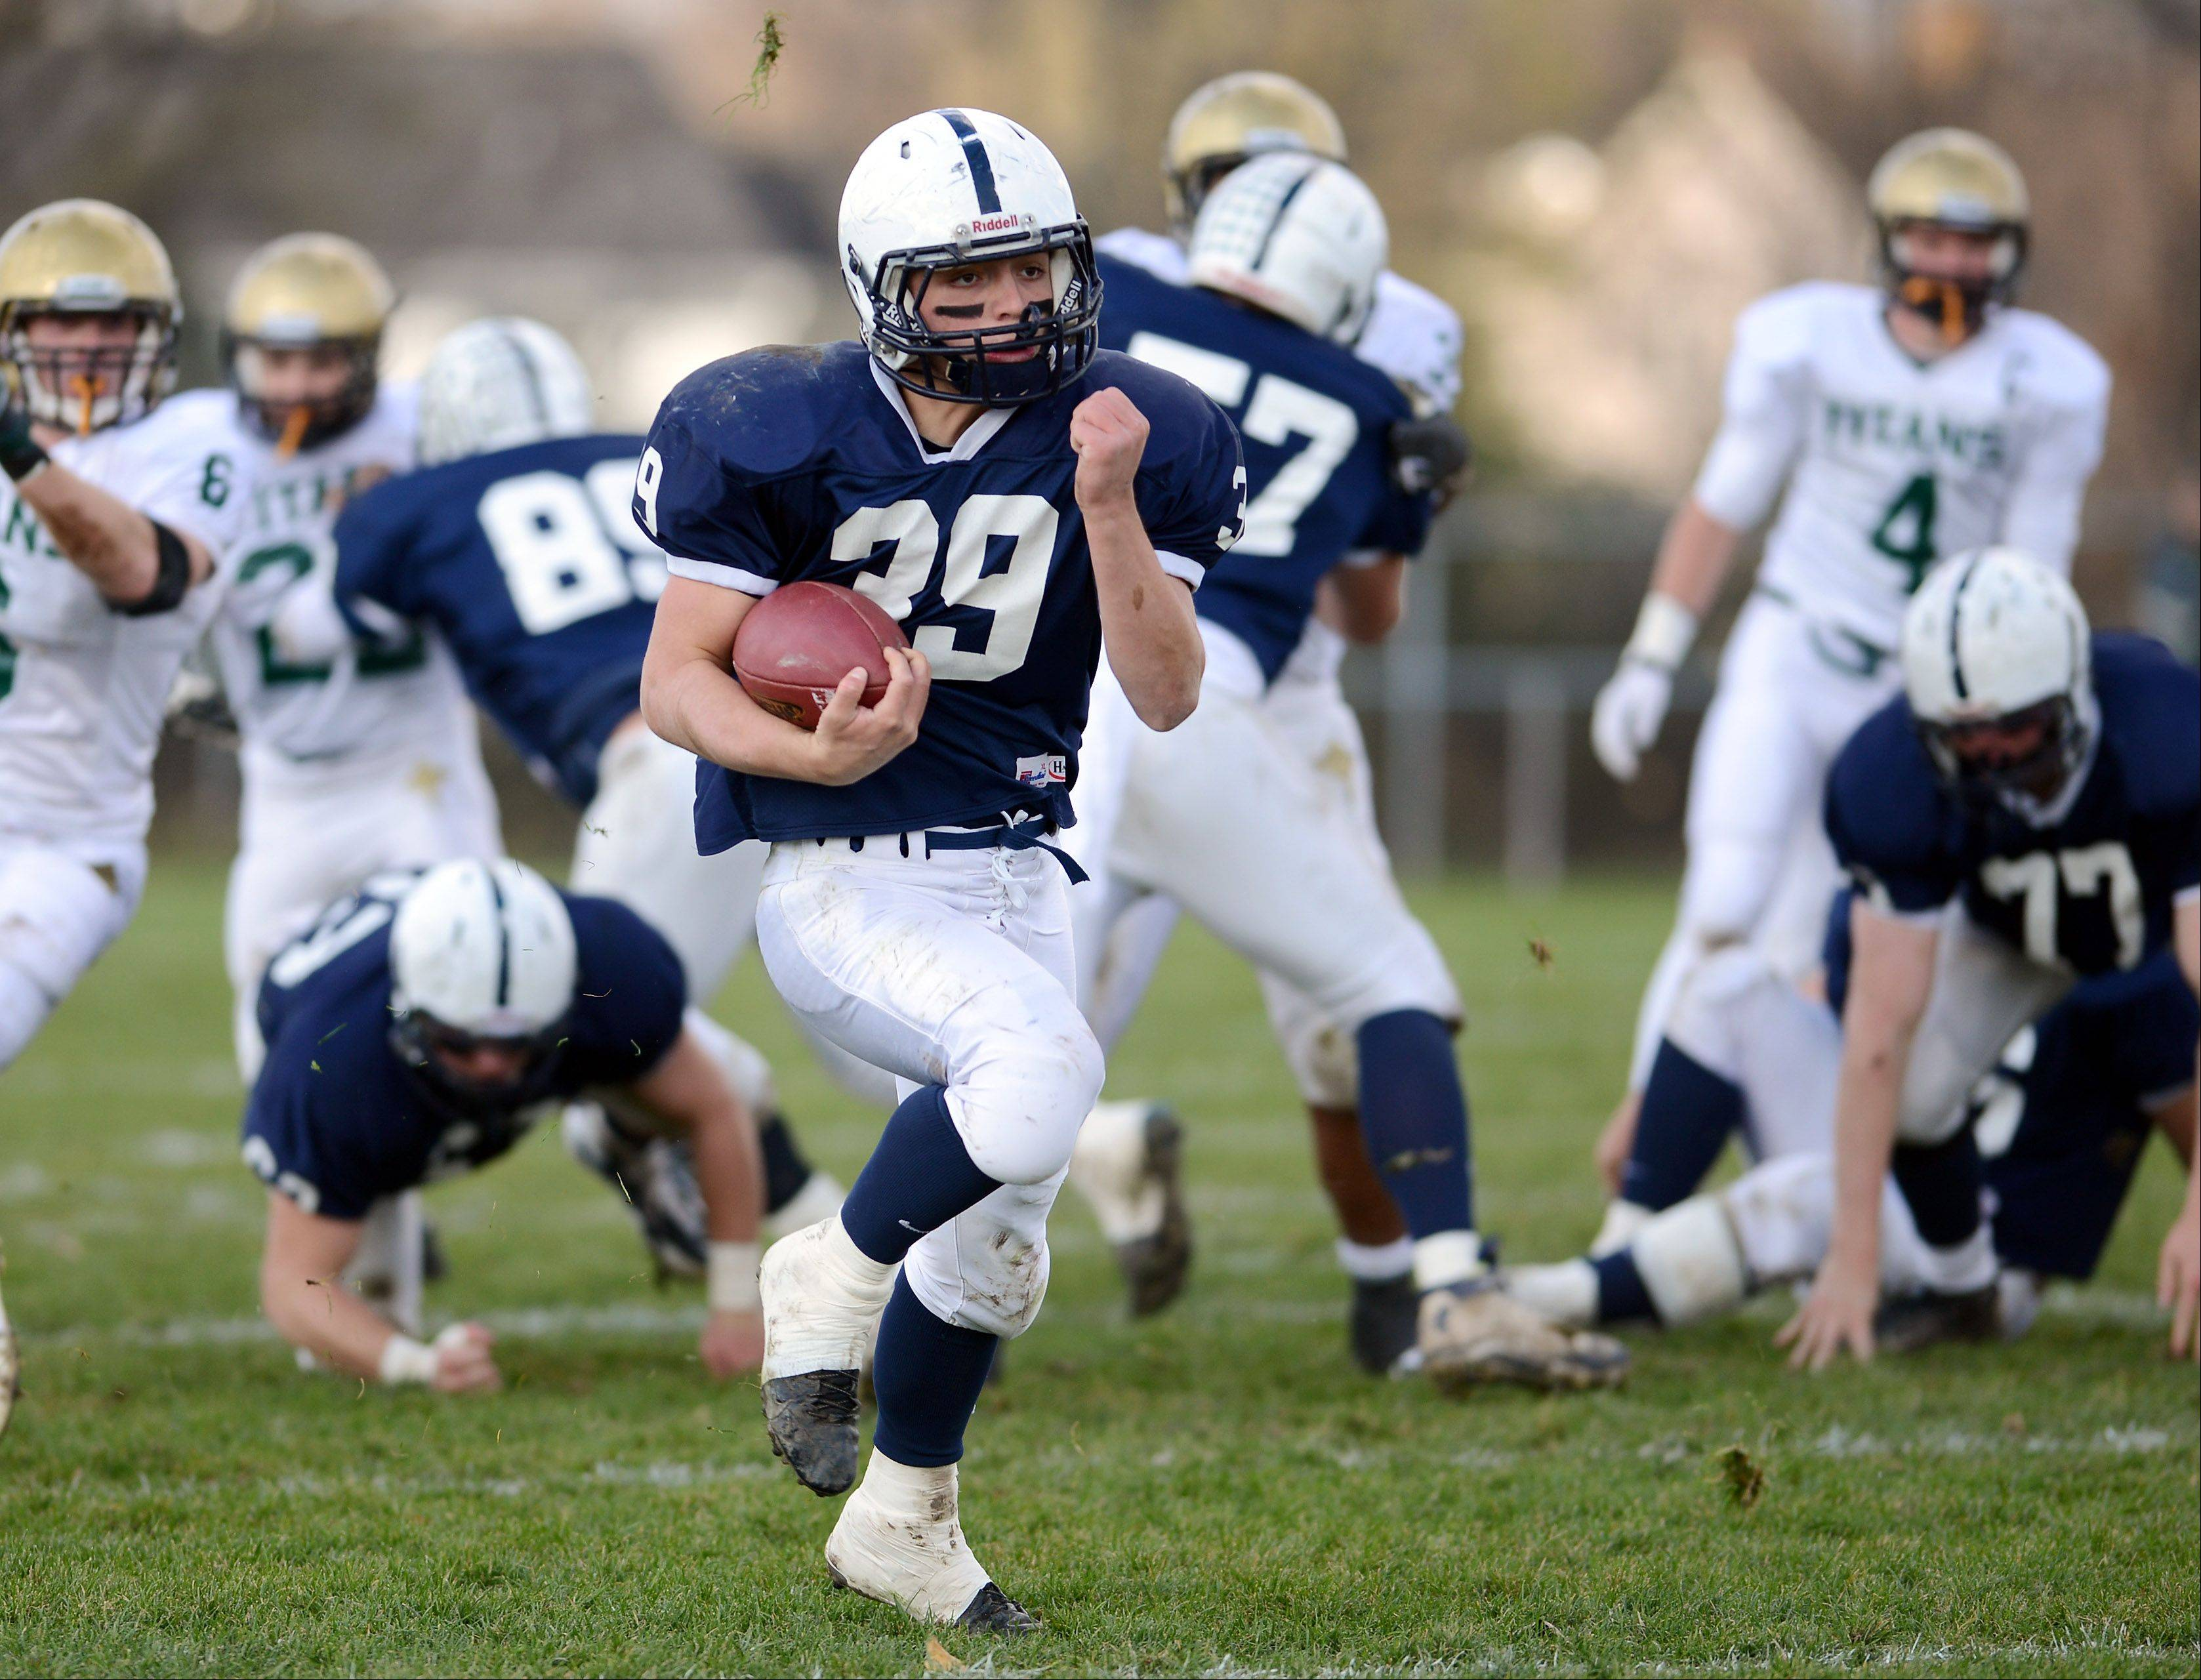 Cary-Grove's Tyler Pennington (39) breaks a long run against Boylan Catholic during Saturday's game in Cary.